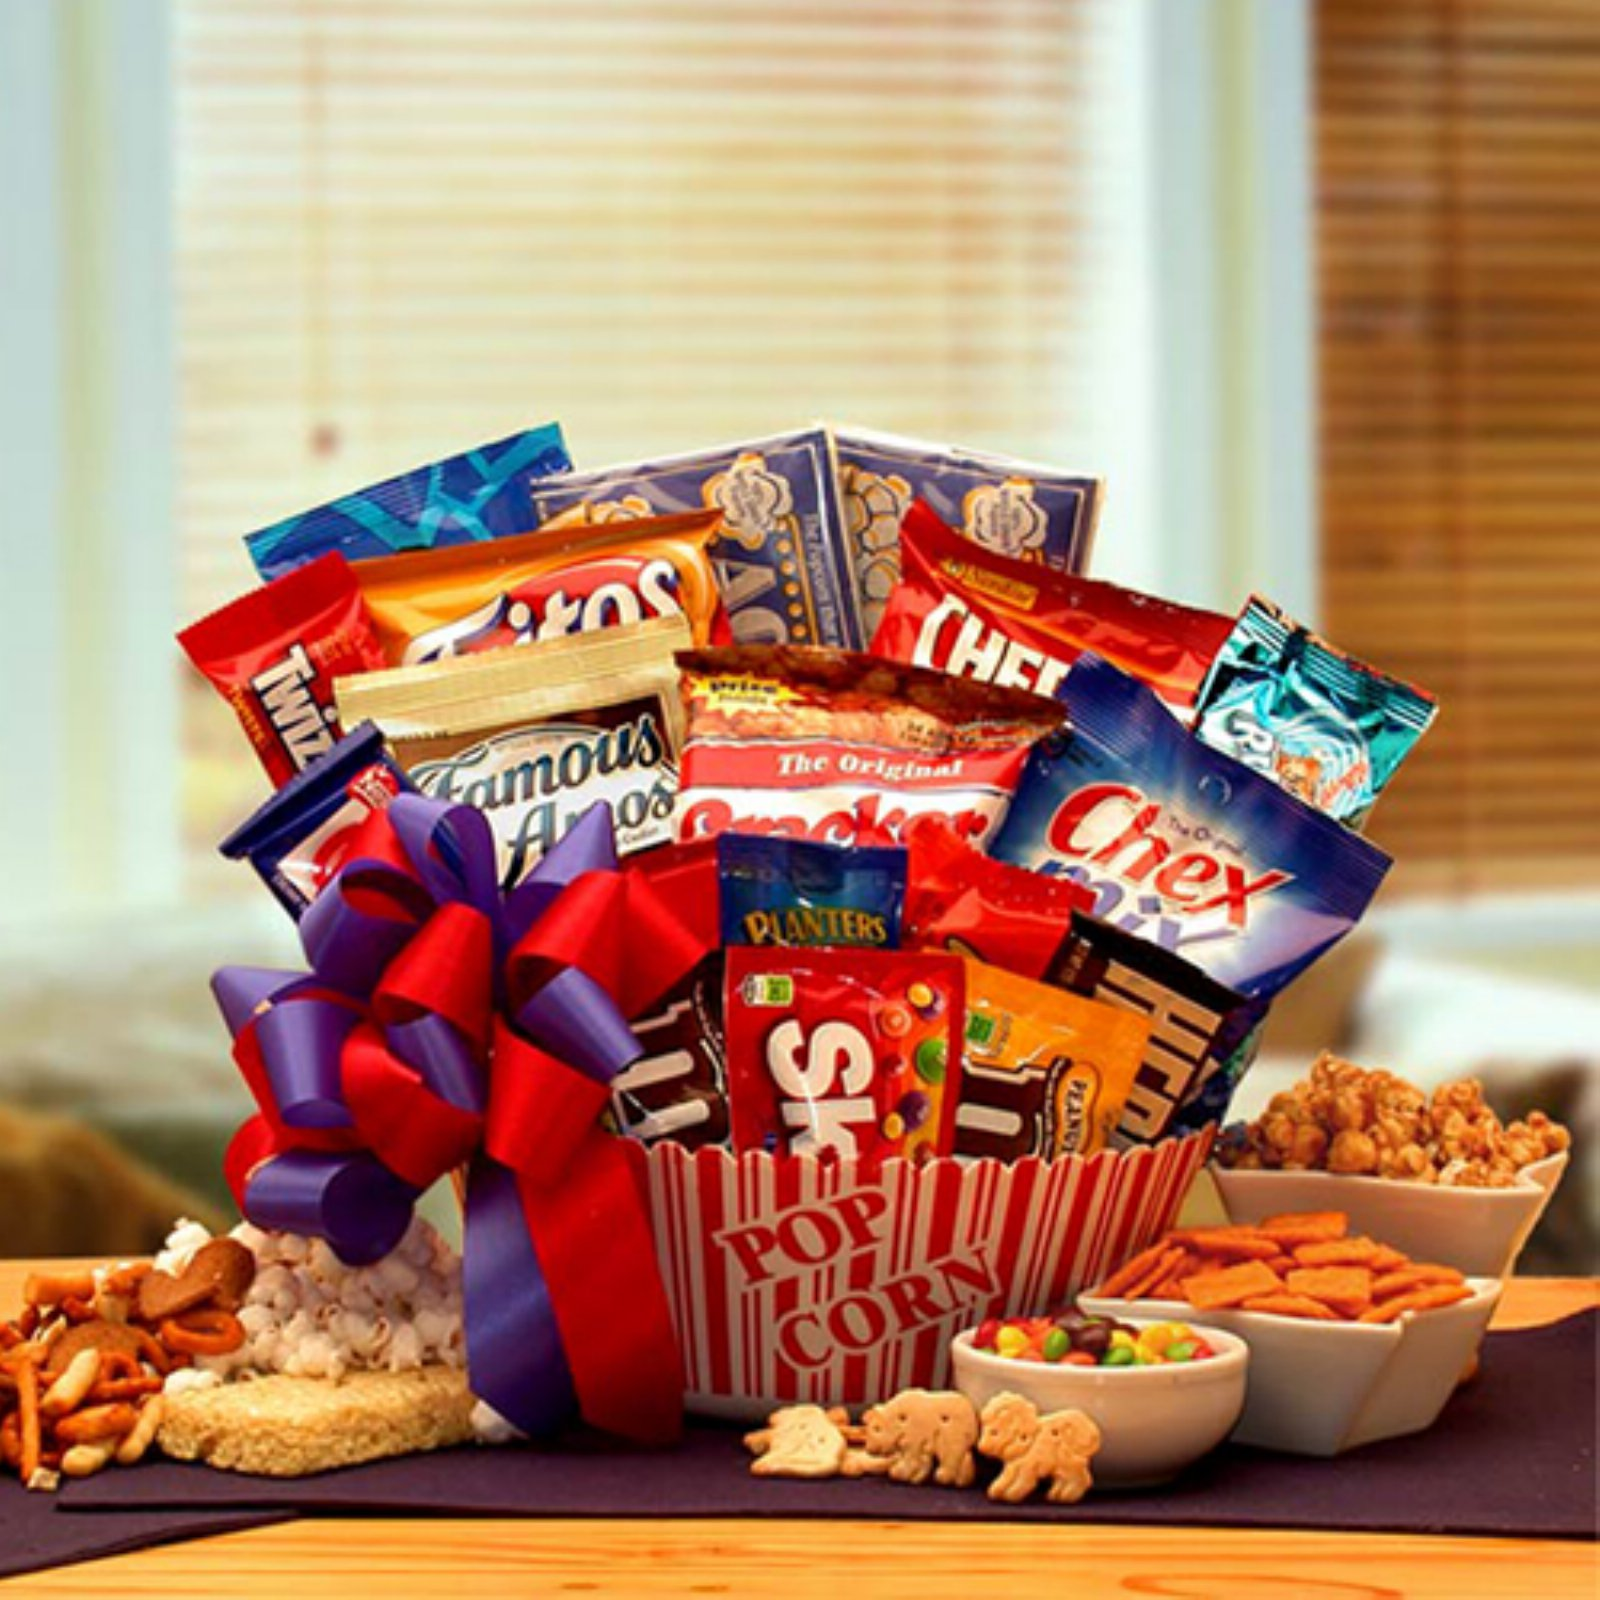 Snack time Favorites Gift Basket - Walmart.com on planter wreaths, woven planter baskets, planter bags, planter plants, wall planter baskets, wire baskets,